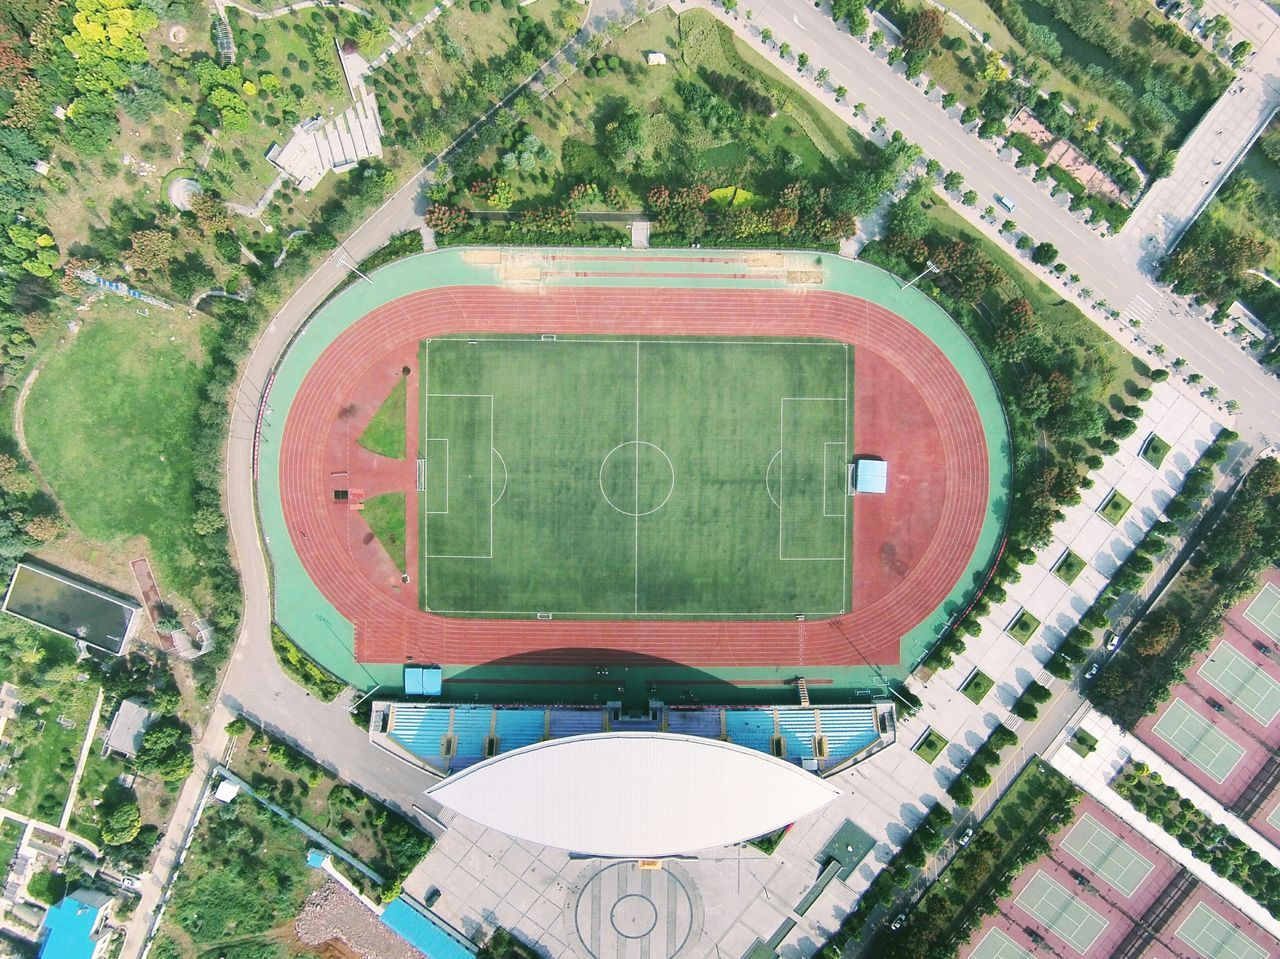 High angle view of stadium